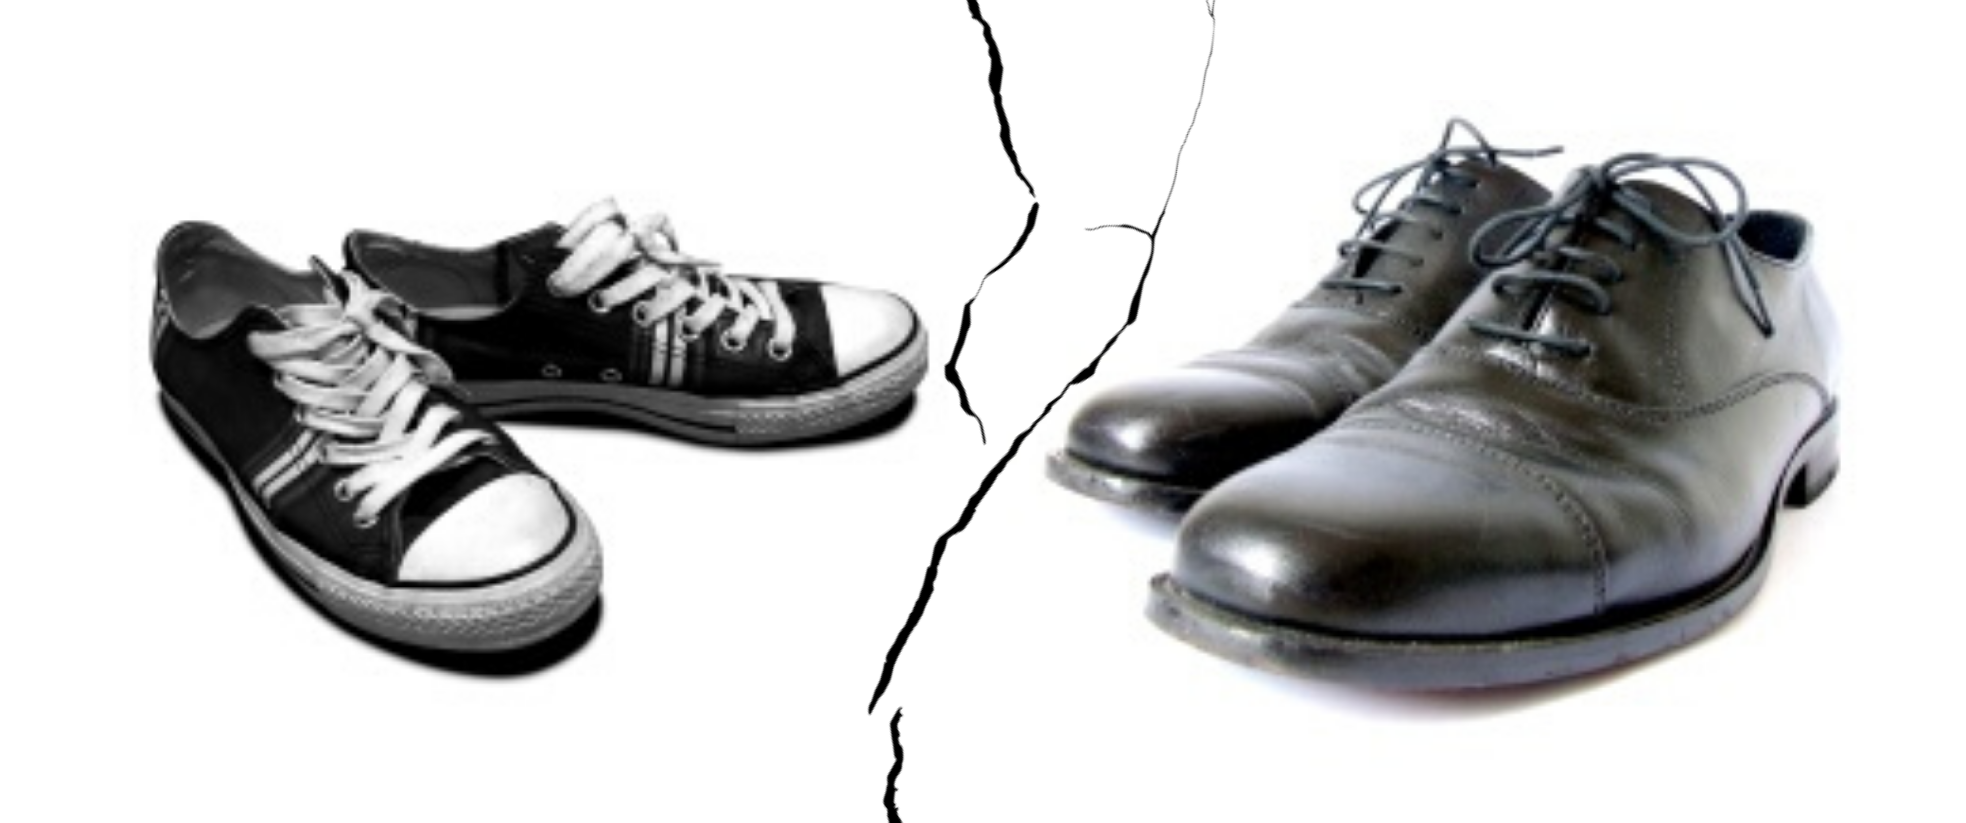 A pair of black converse shoes to the left divided by a crack in the screen with a pair of black formal shoes to the right